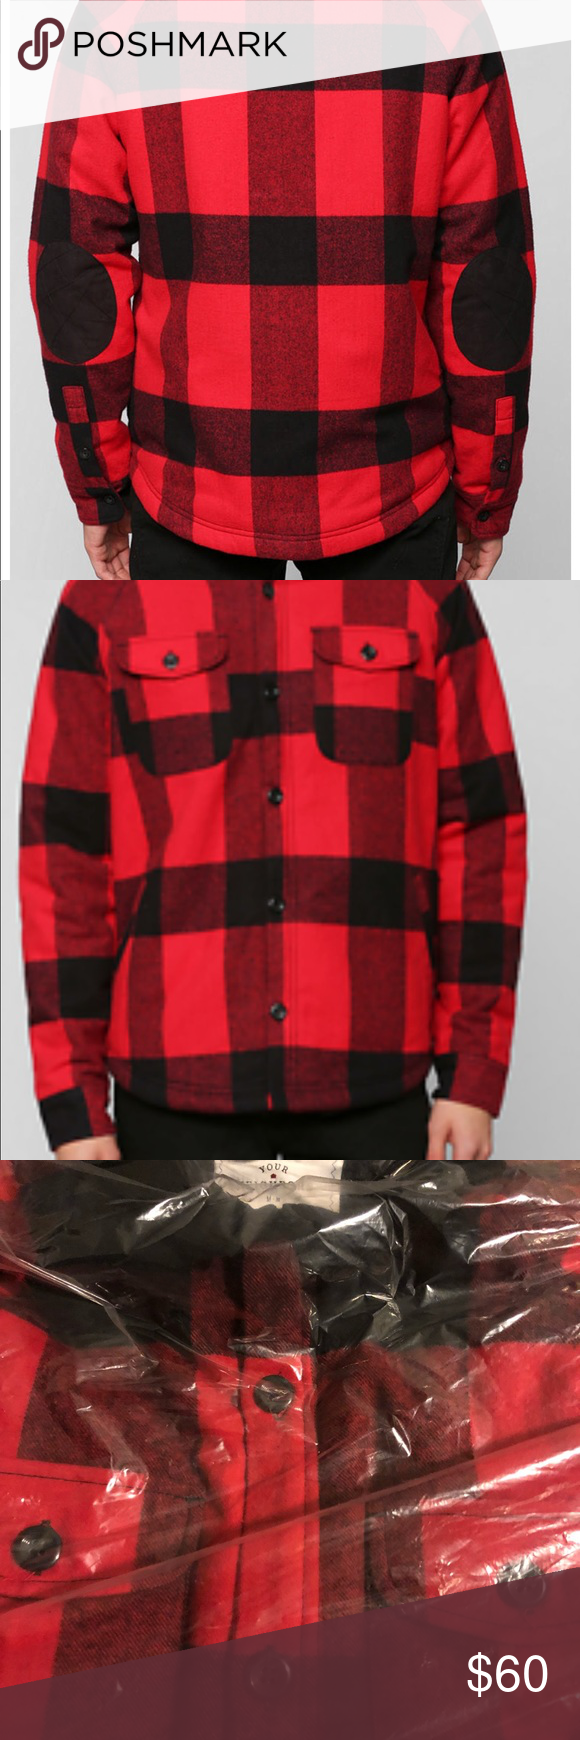 Flannel jacket with elbow patches  Brand new Your Neighbors Flannel Shirt Jacket NWT  My Posh Picks